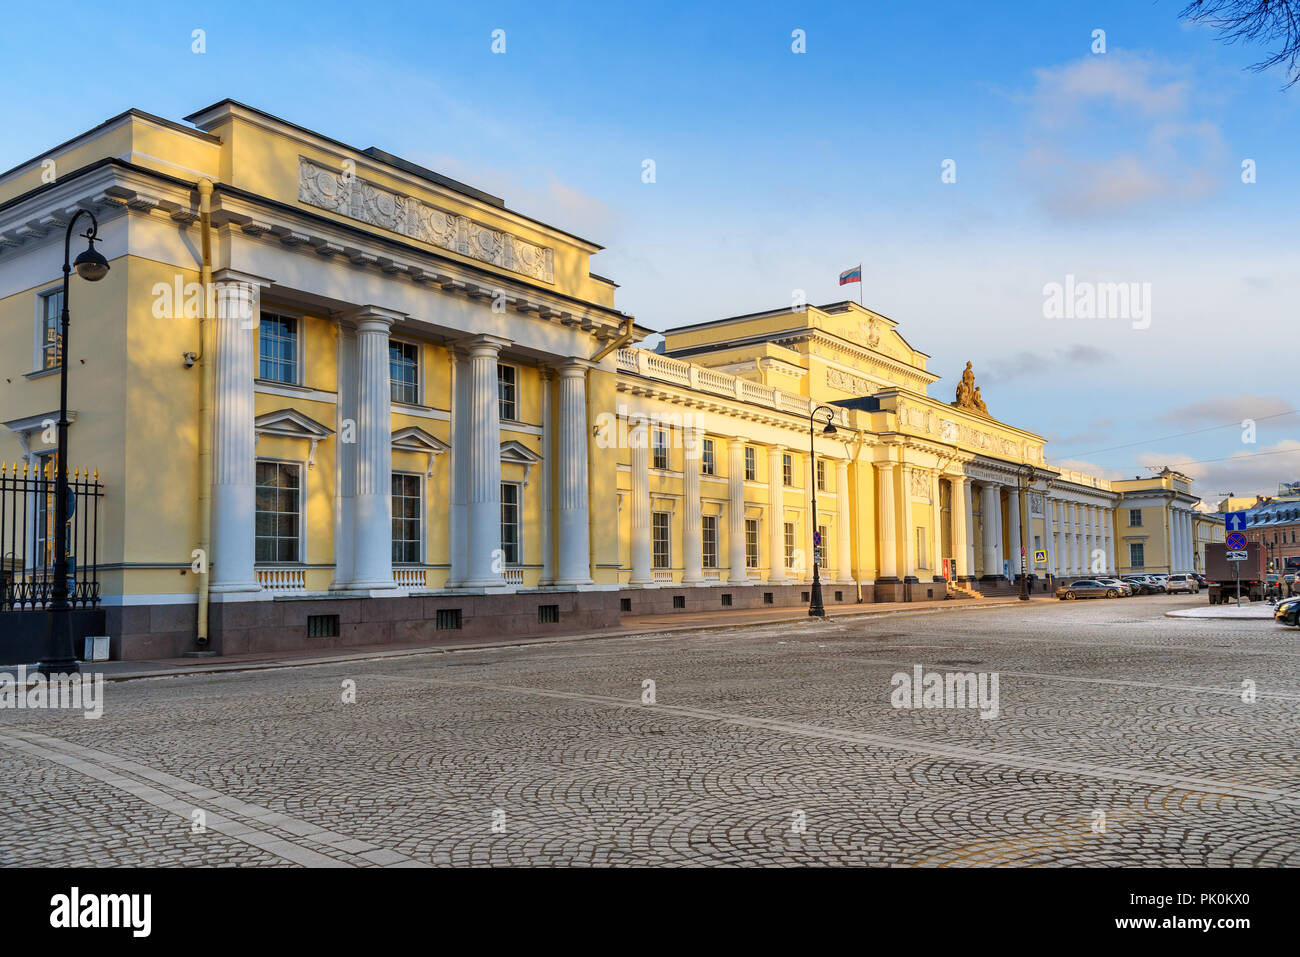 Russian Museum of Ethnography building in Saint Petersburg, Russia - Stock Image